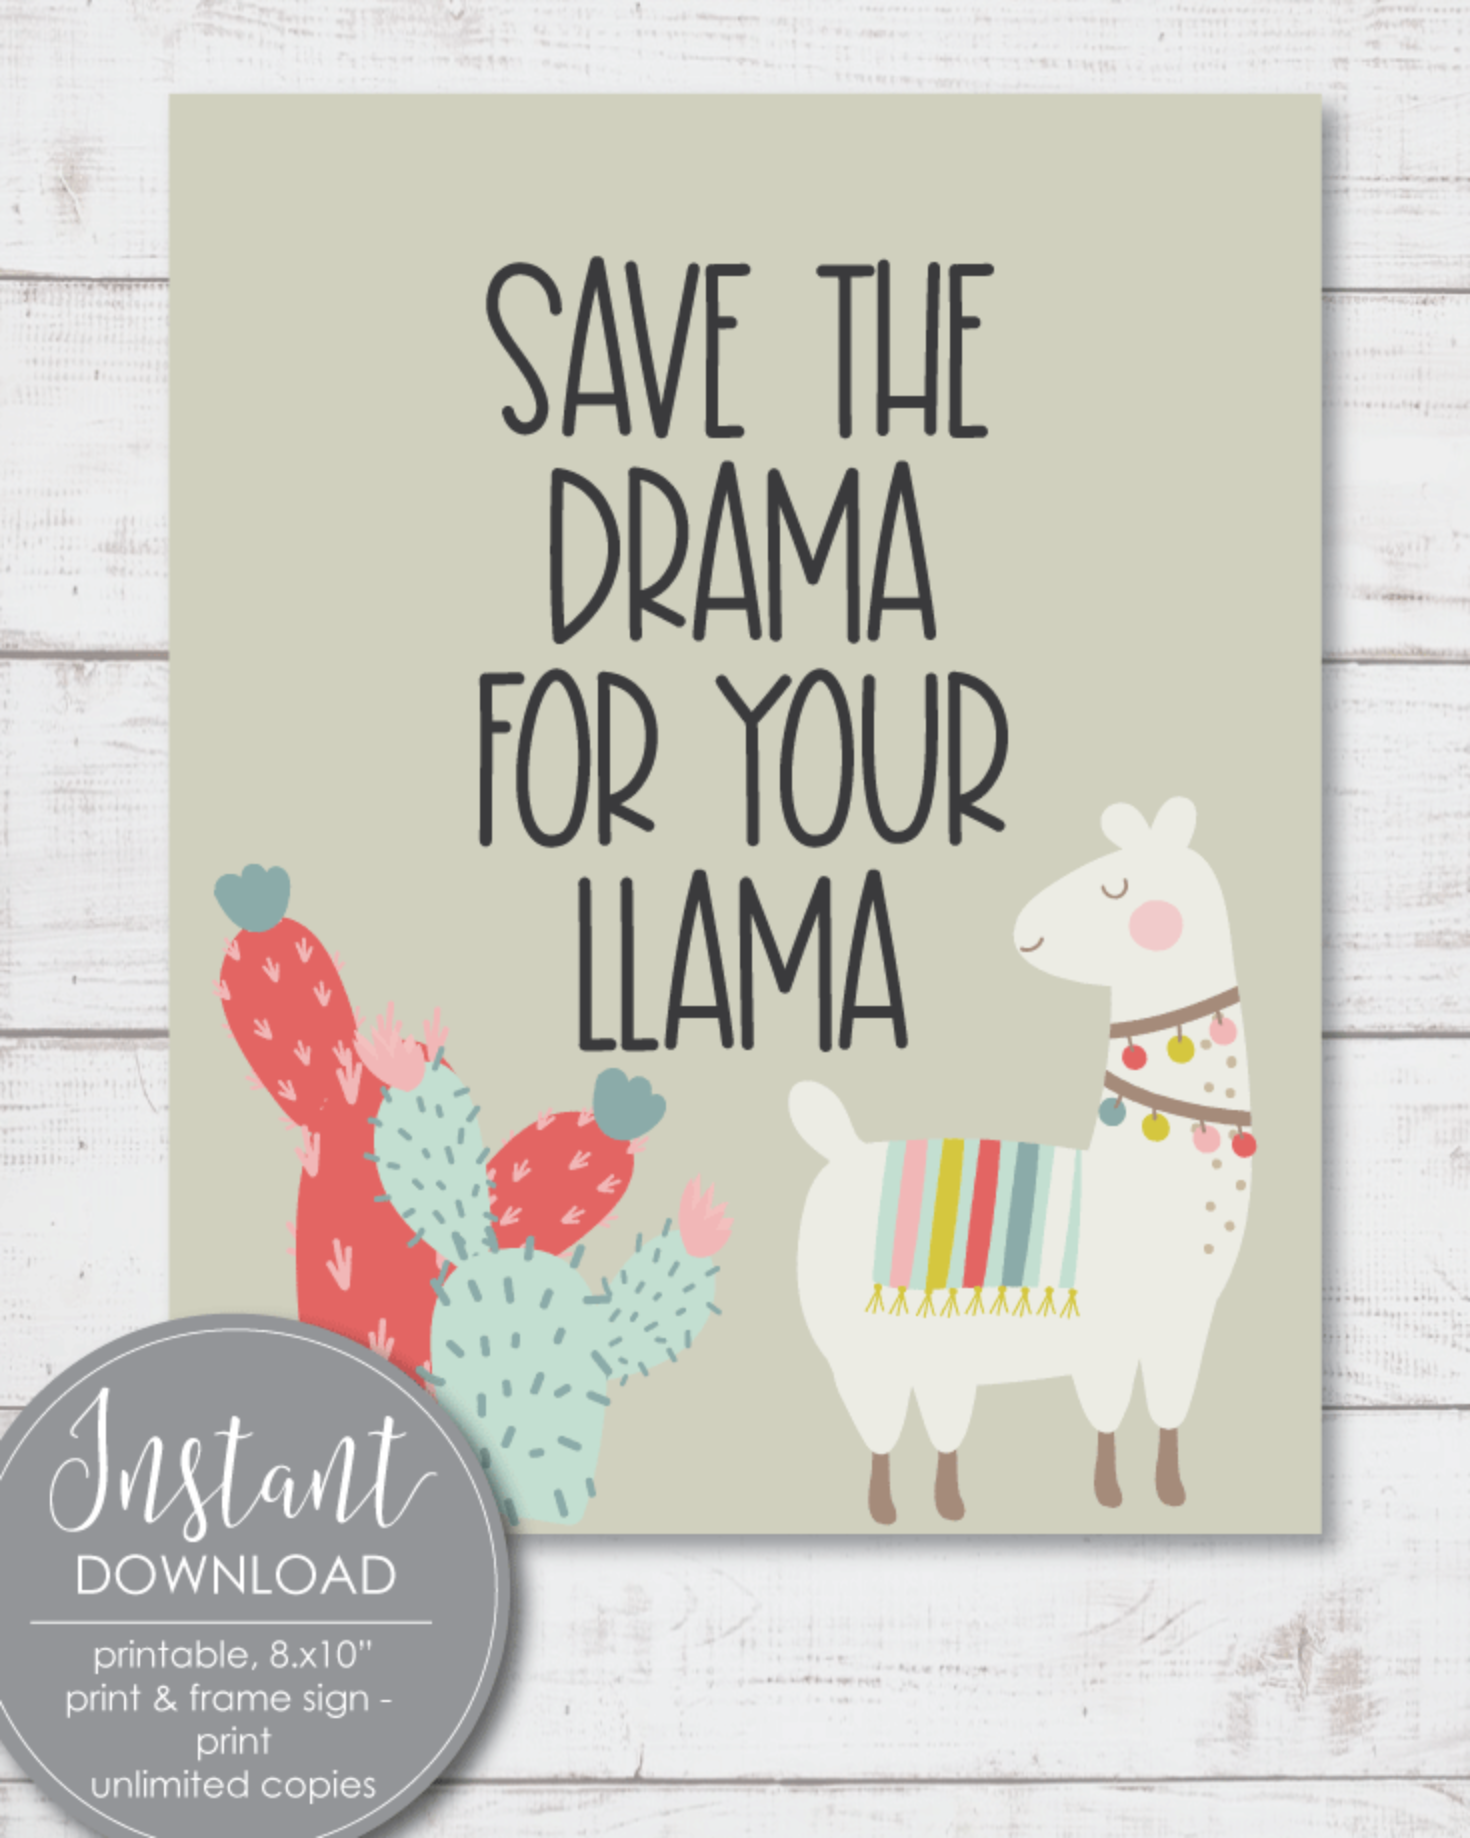 "Printable Boho Llama Cactus Sign - Save The Drama For Your Llama, 8x10"" Wall Art"